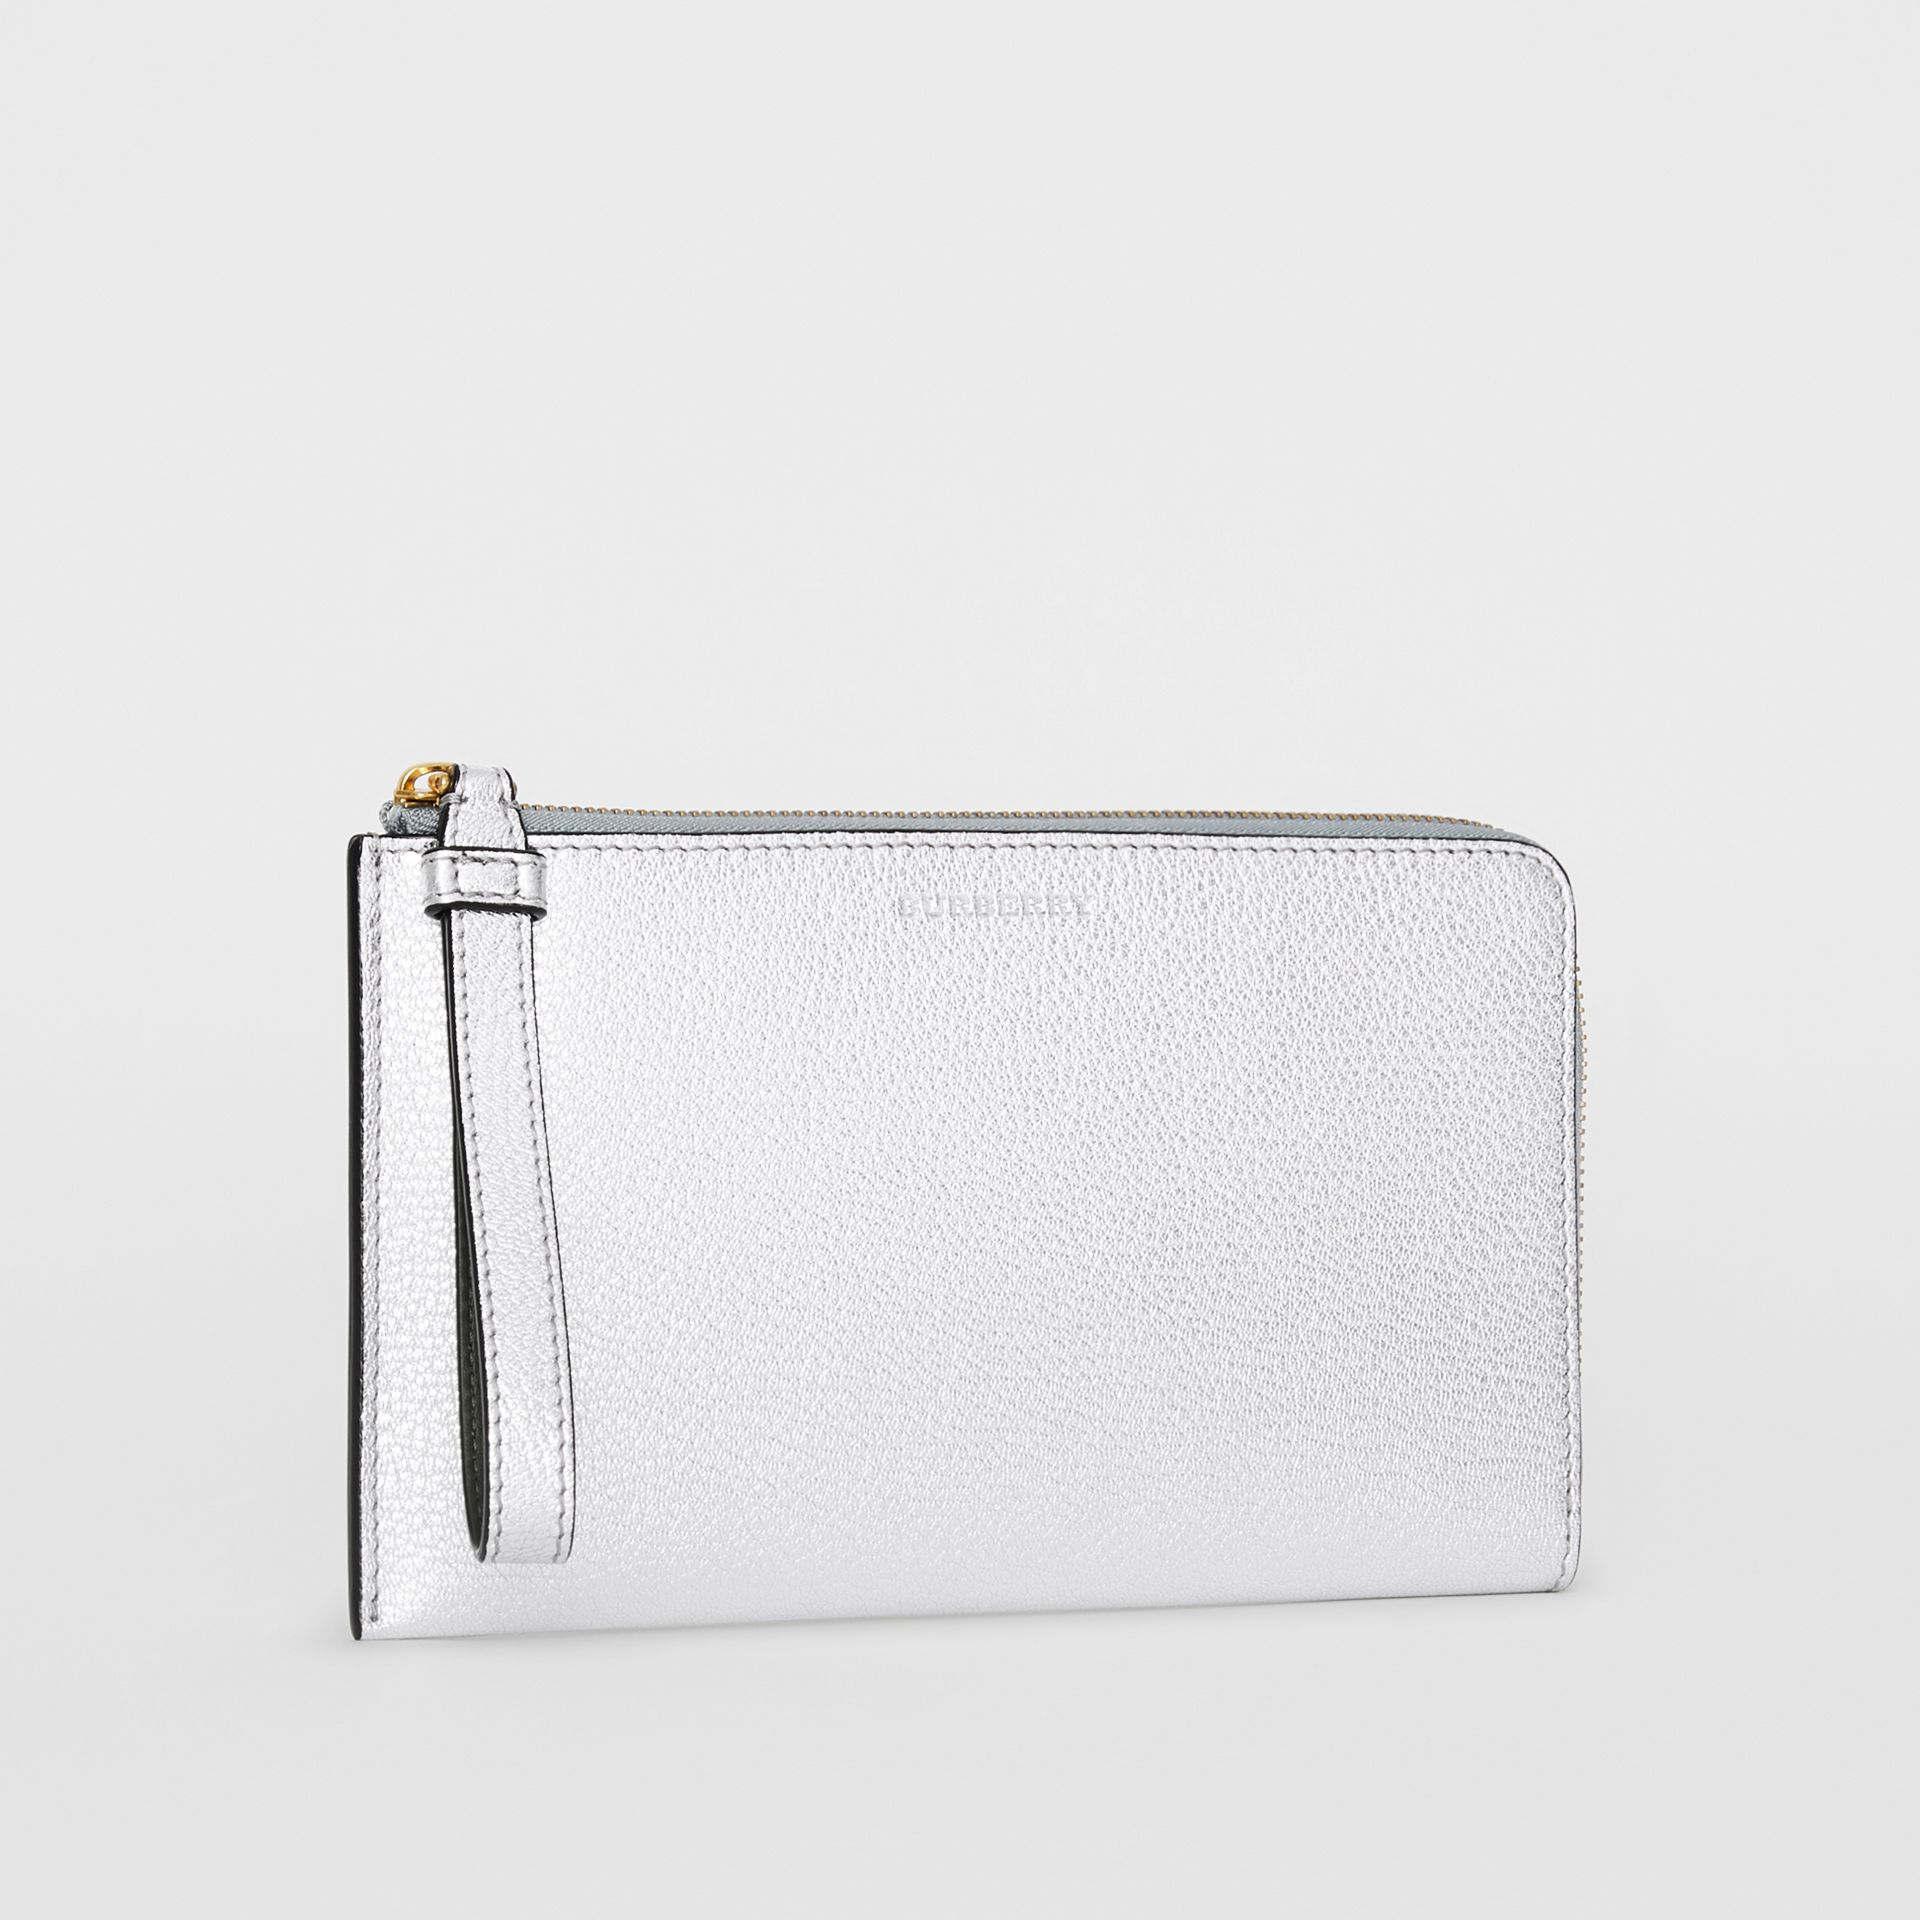 Two-tone Metallic Leather Travel Wallet in Silver - Women | Burberry - gallery image 7